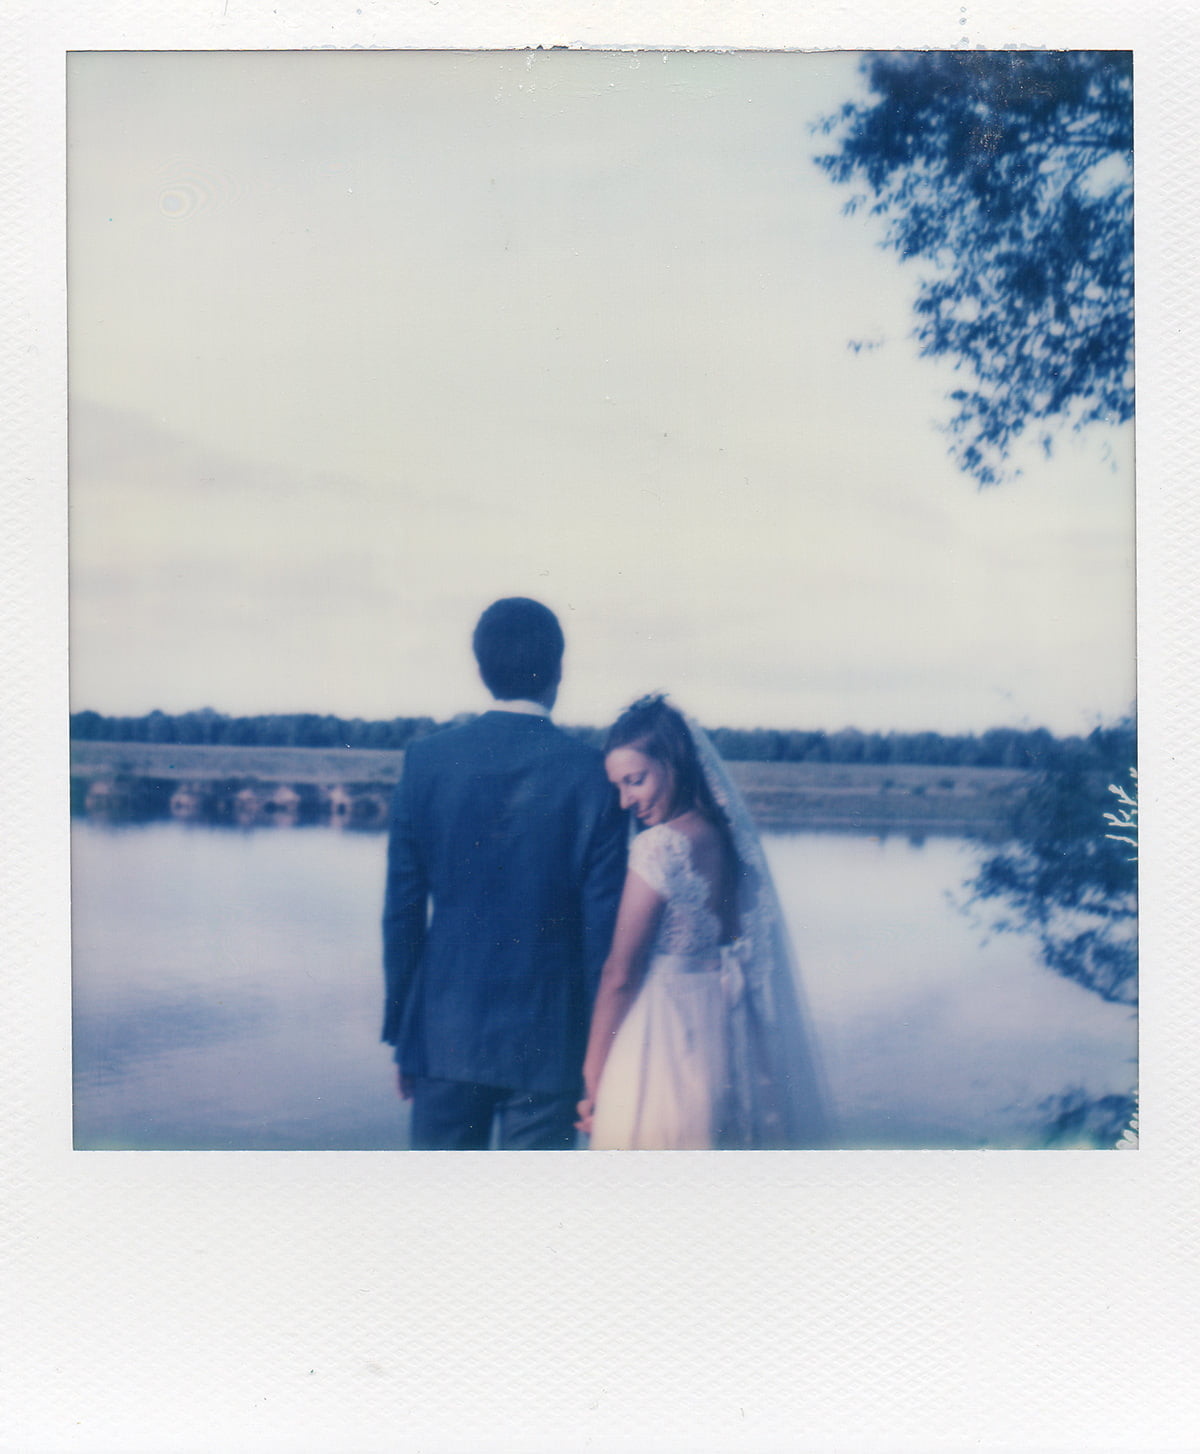 Impossible-Project-Polaroid-Film-Artistic-Quirky-Wedding-Photography-011